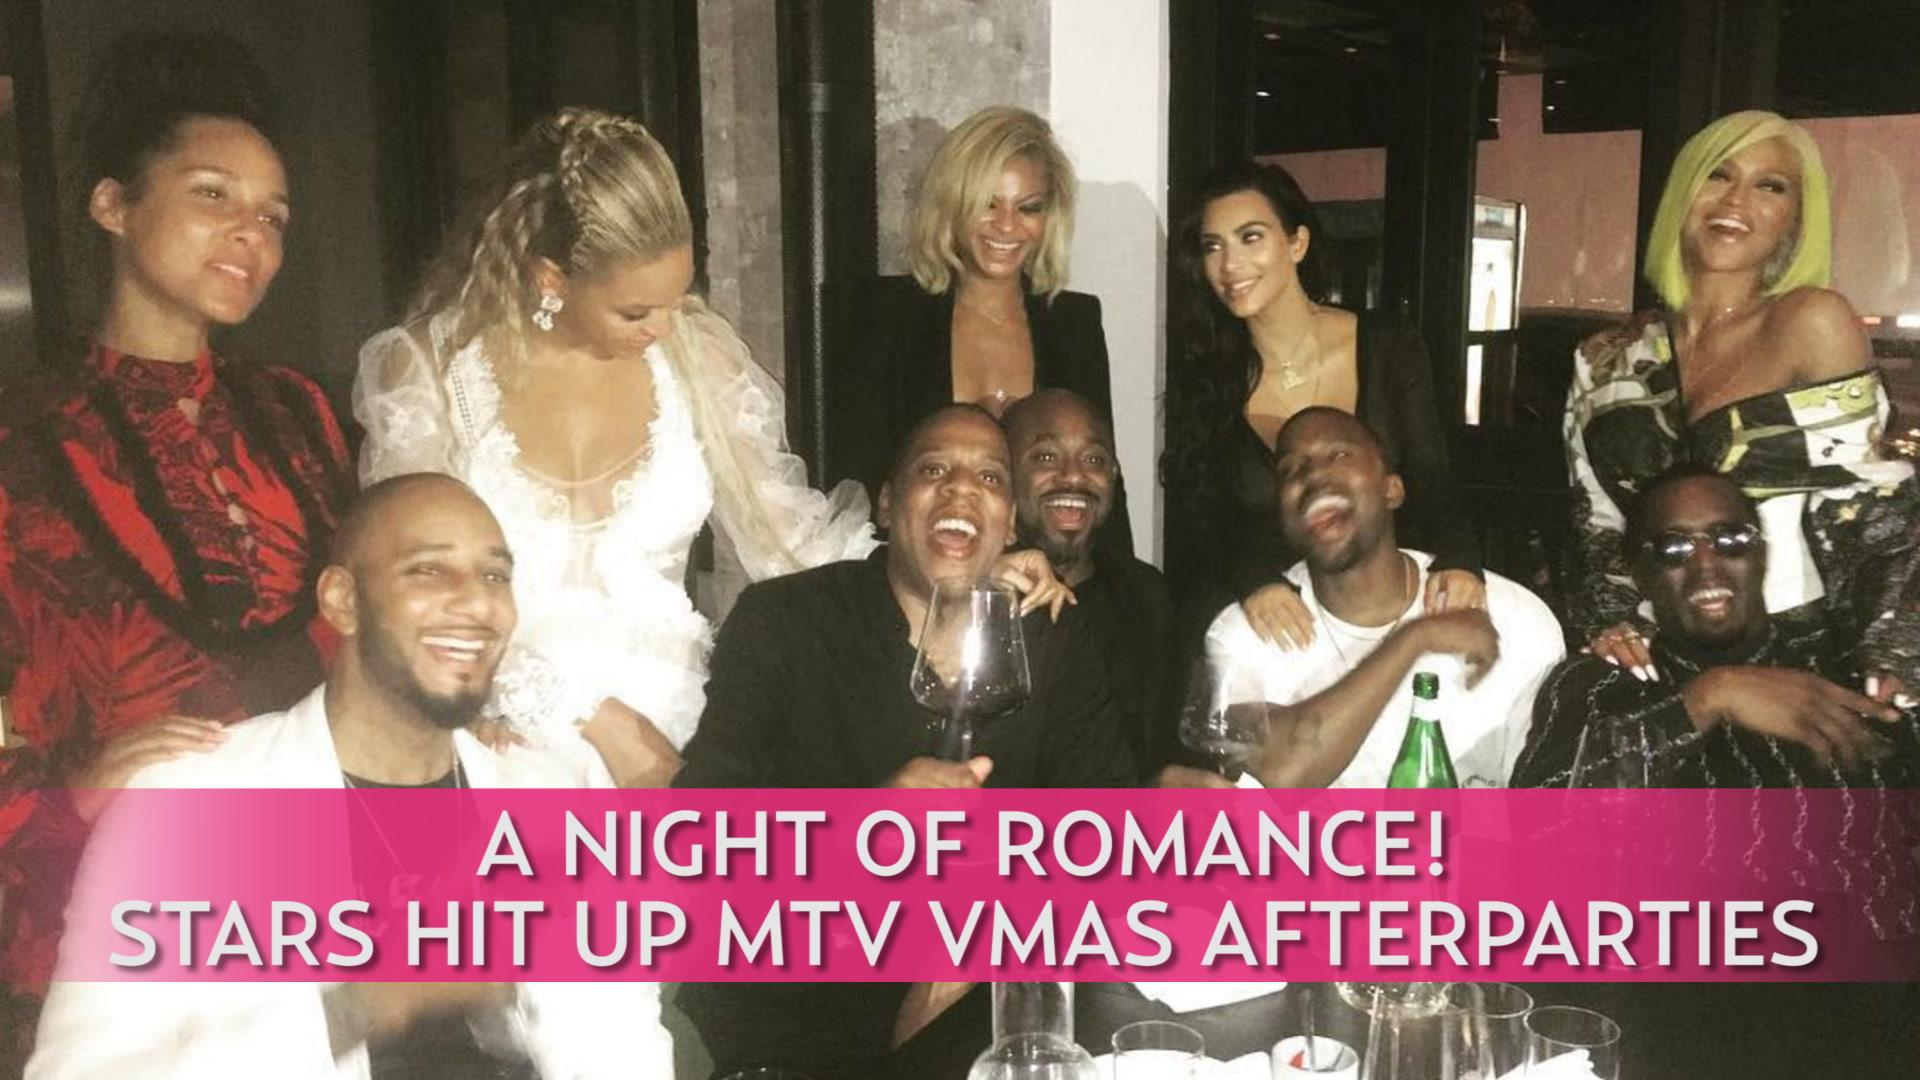 A Night of Romance! Stars Hit Up MTV VMAs Afterparties